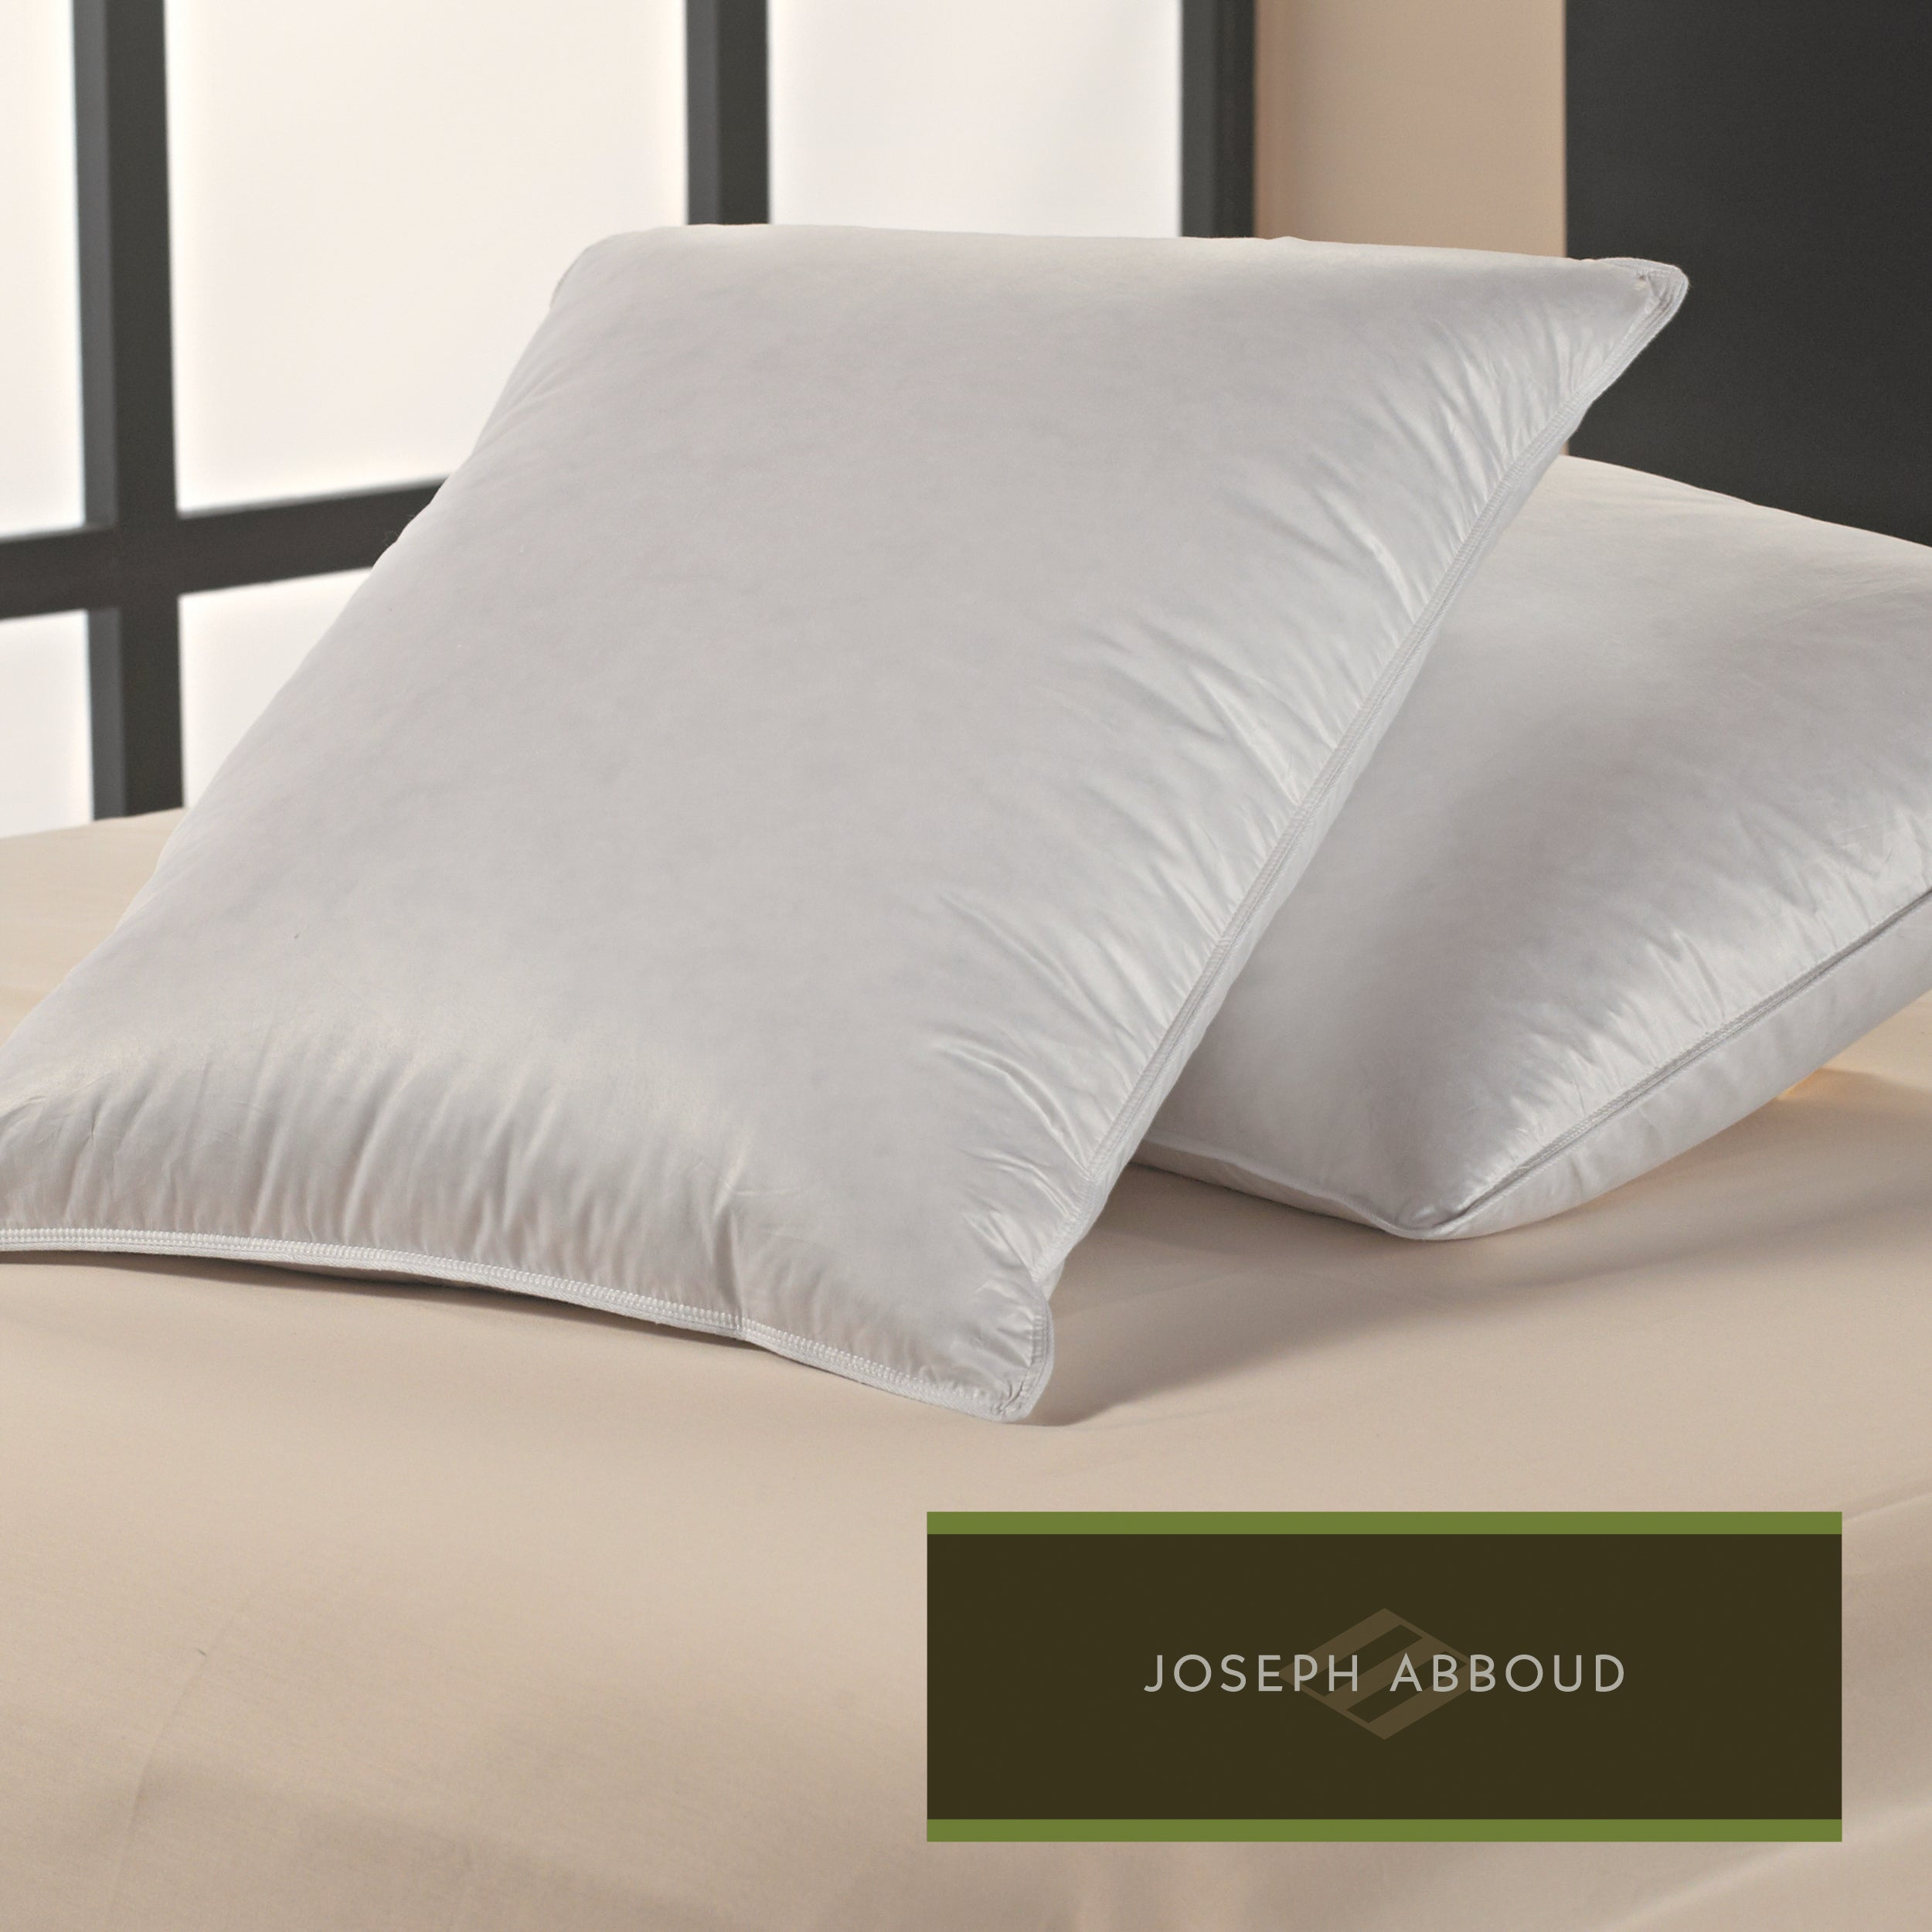 Joseph Abboud 300 Thread Count Luxury Comfort Pillows (Set of 2)